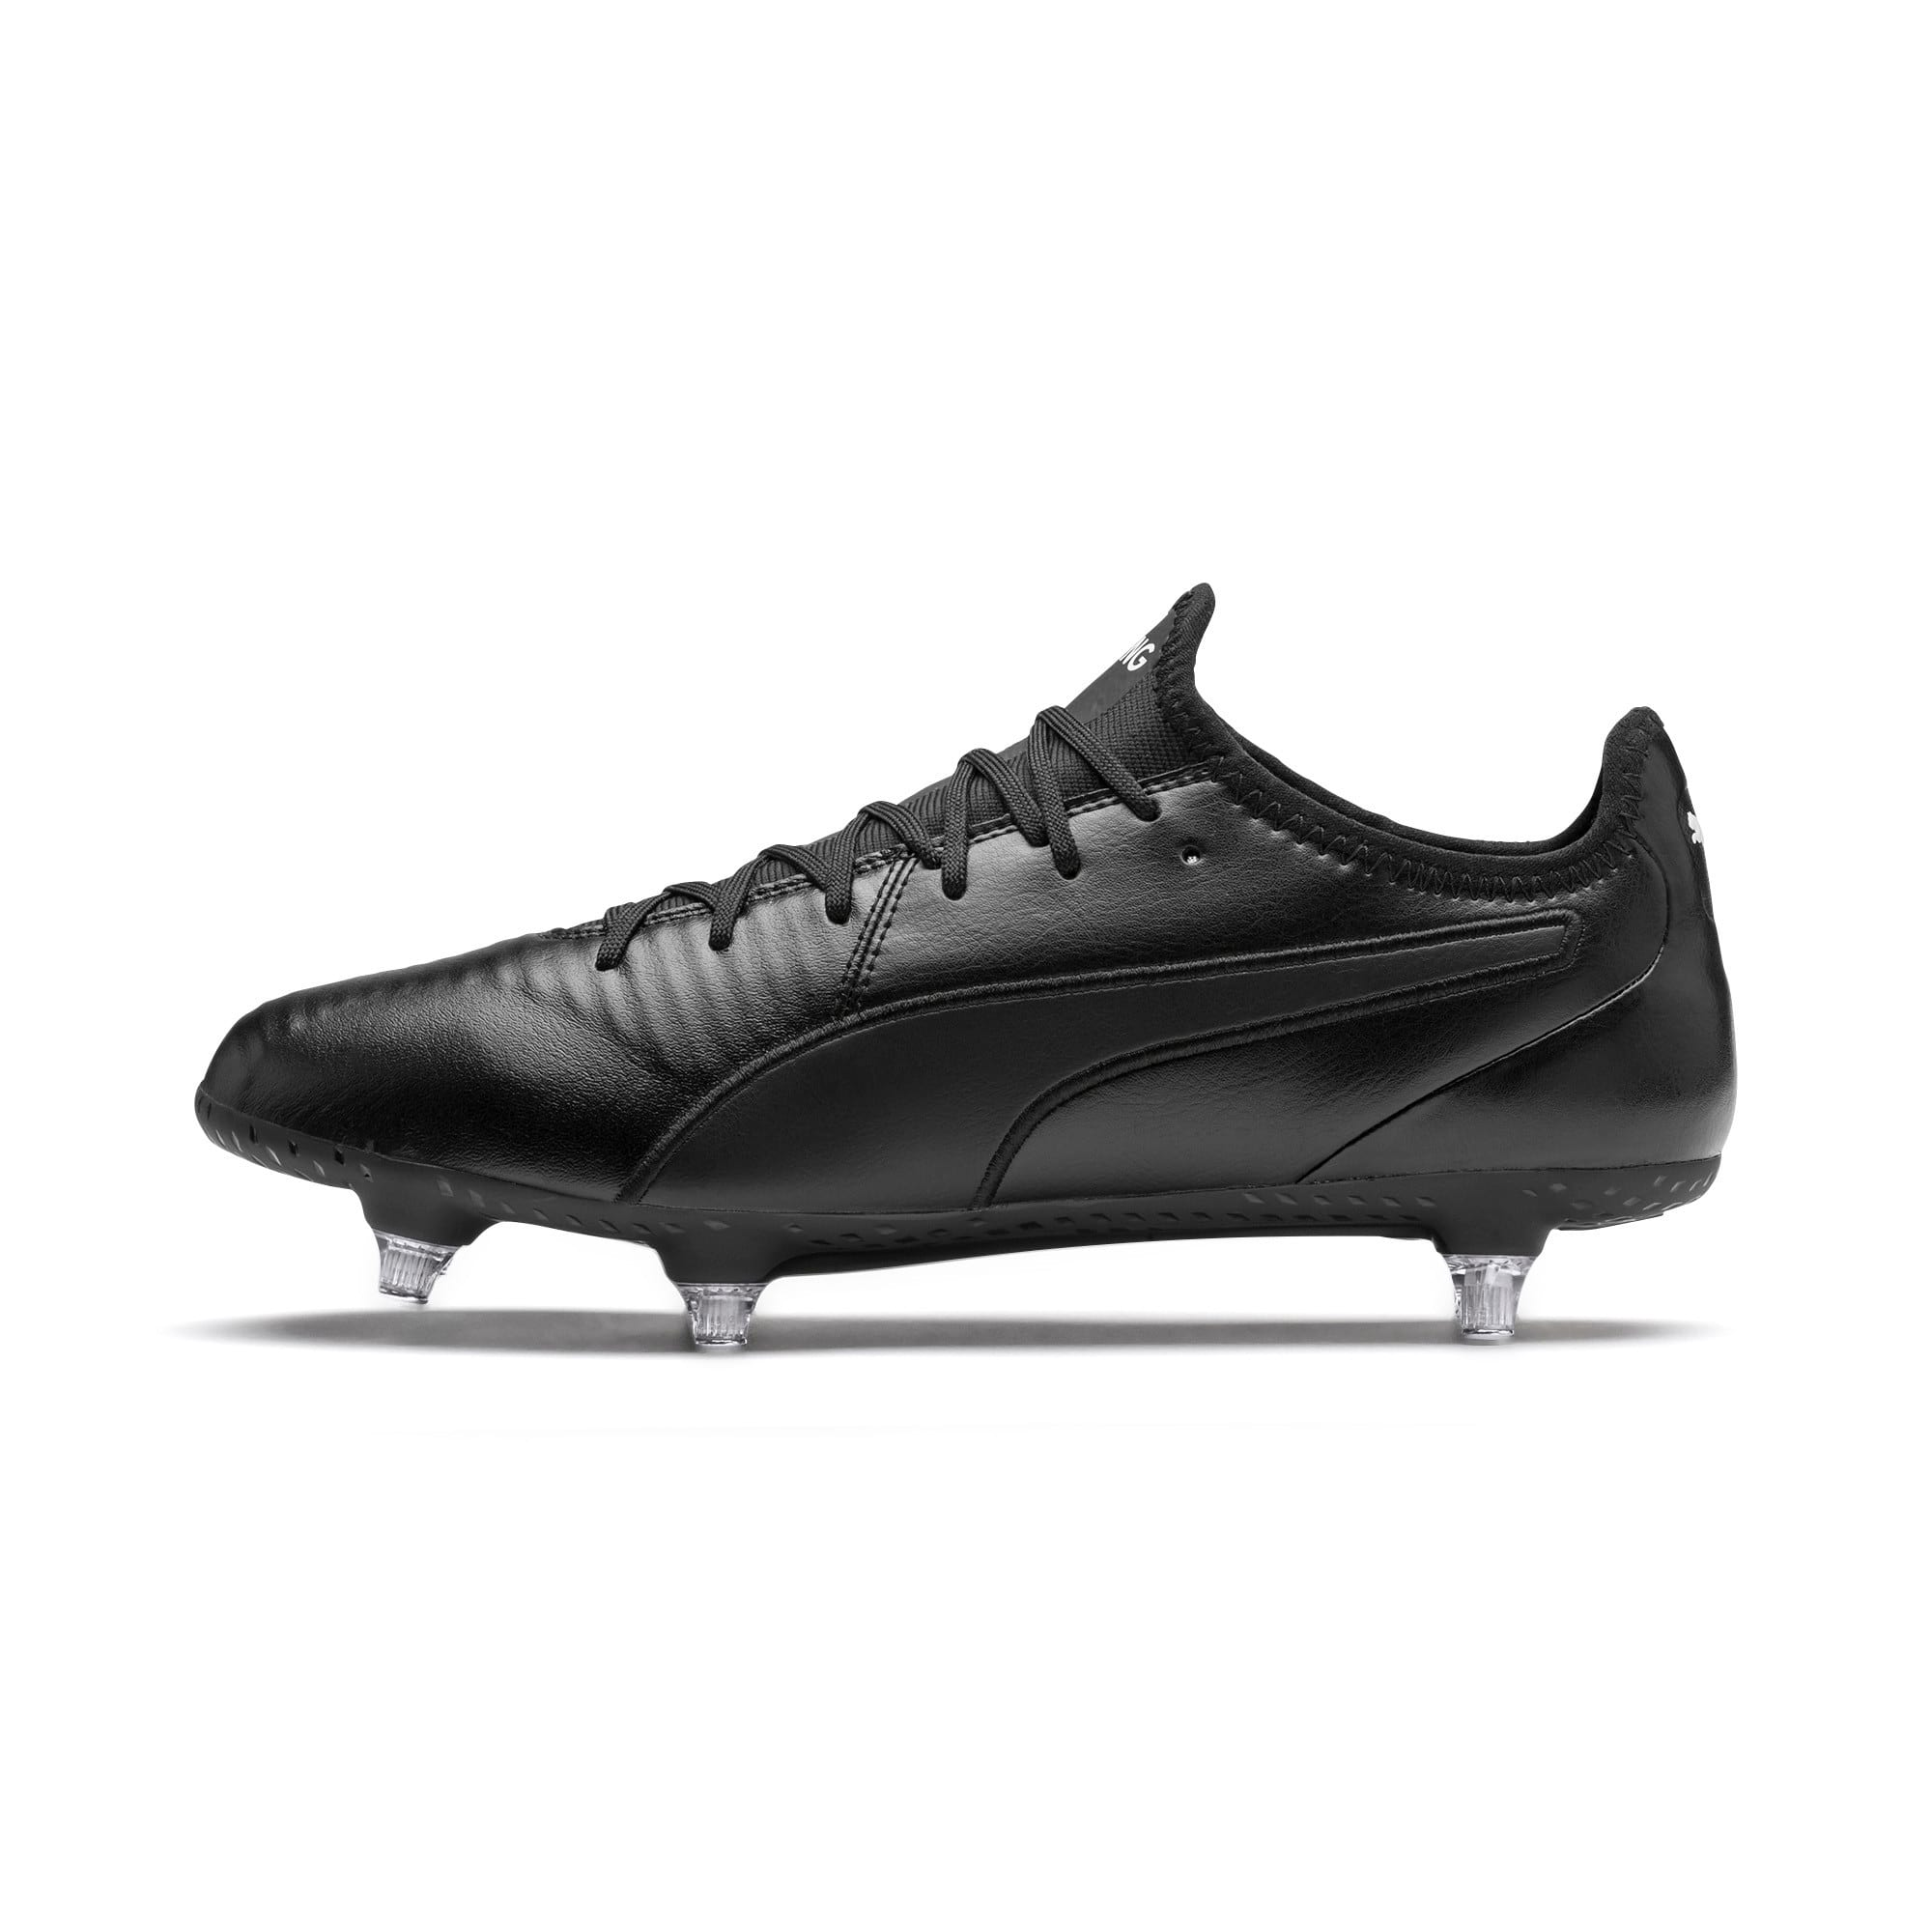 Thumbnail 1 of KING SG Men's Football Boots, Puma Black-Puma White, medium